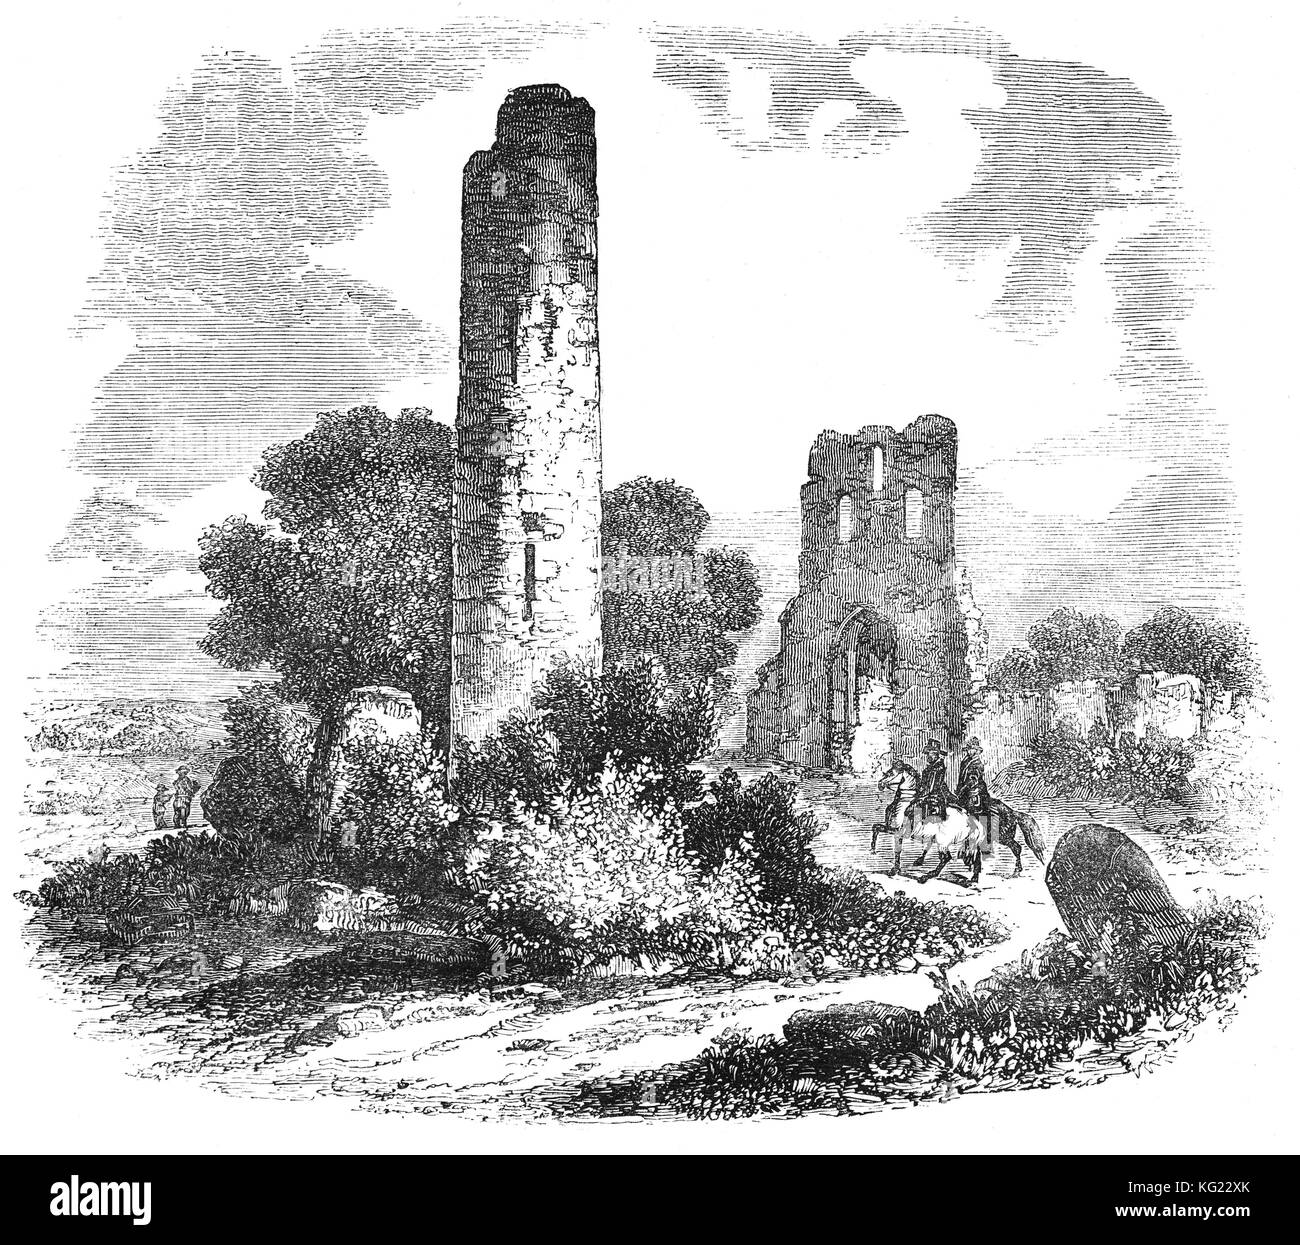 Donaghmore Round Tower was built in the 9th or 10th century. It is well-preserved though missing its conical cap. - Stock Image